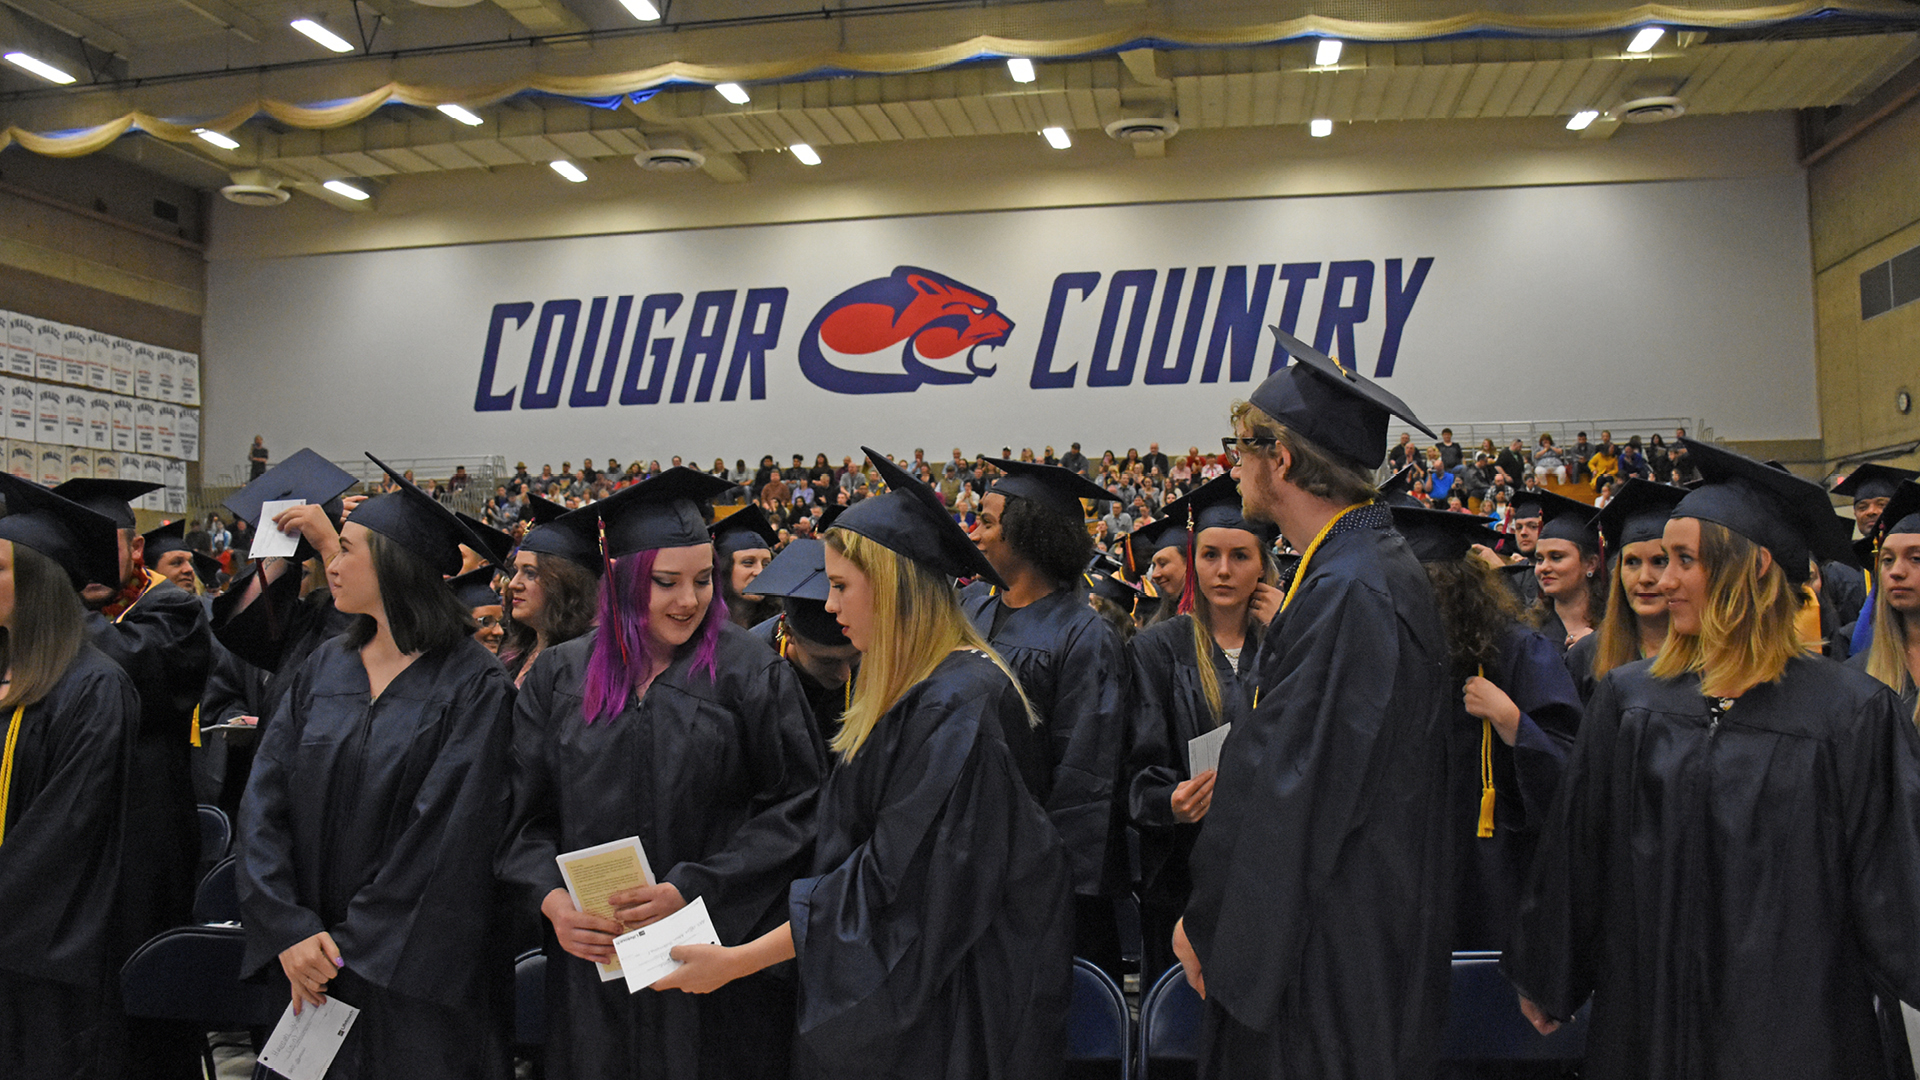 Zoom background of CCC graduates in the Randall gym with the Cougar Country banner in the background